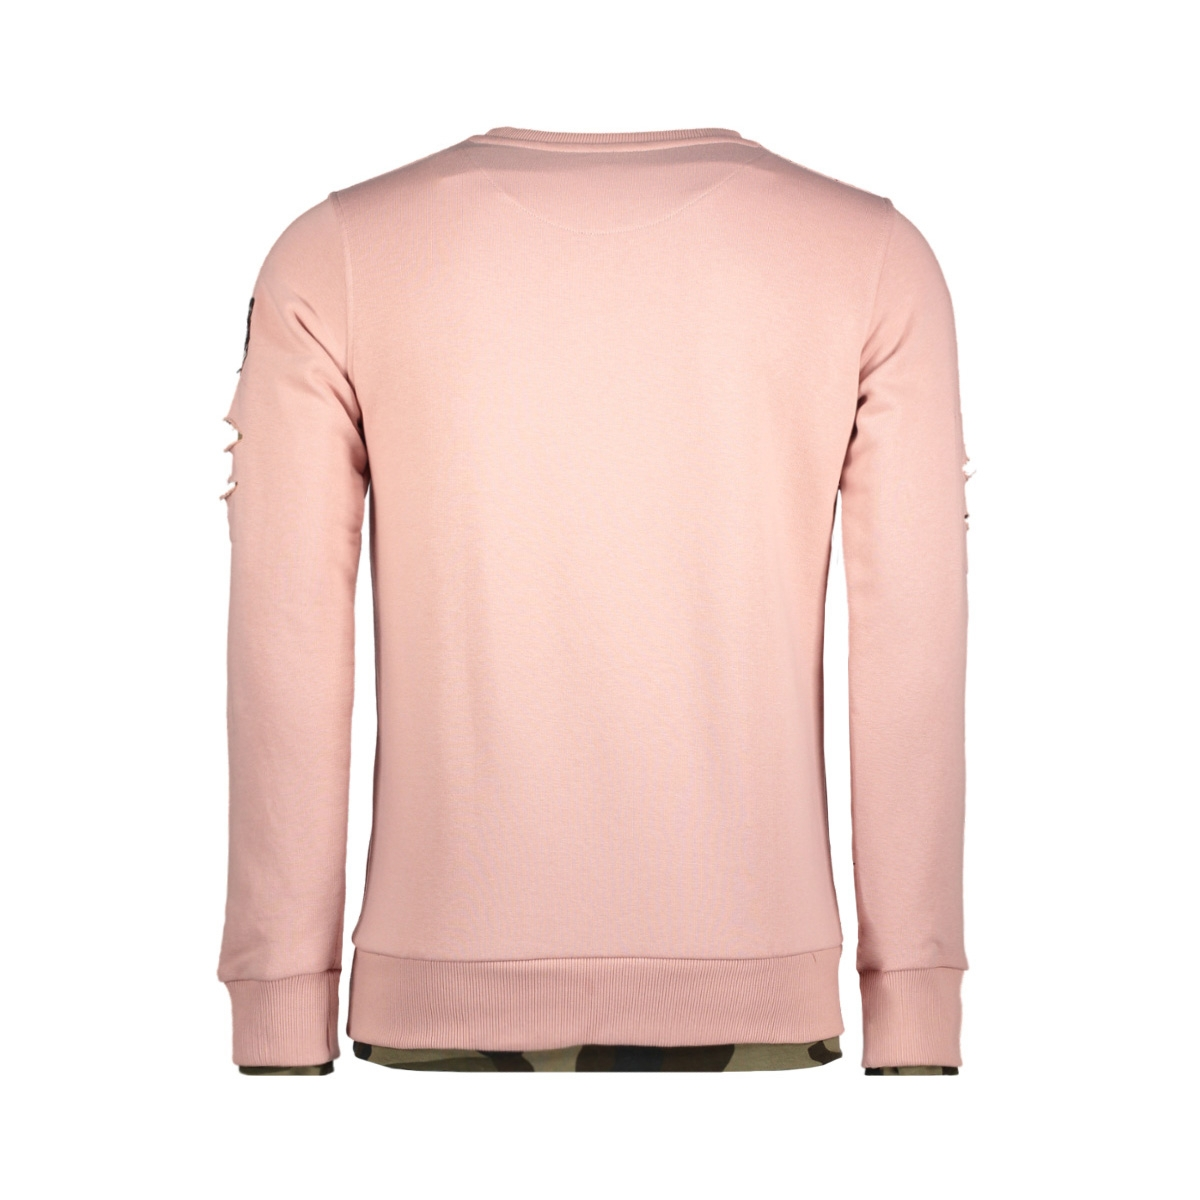 76108 gabbiano sweater pink